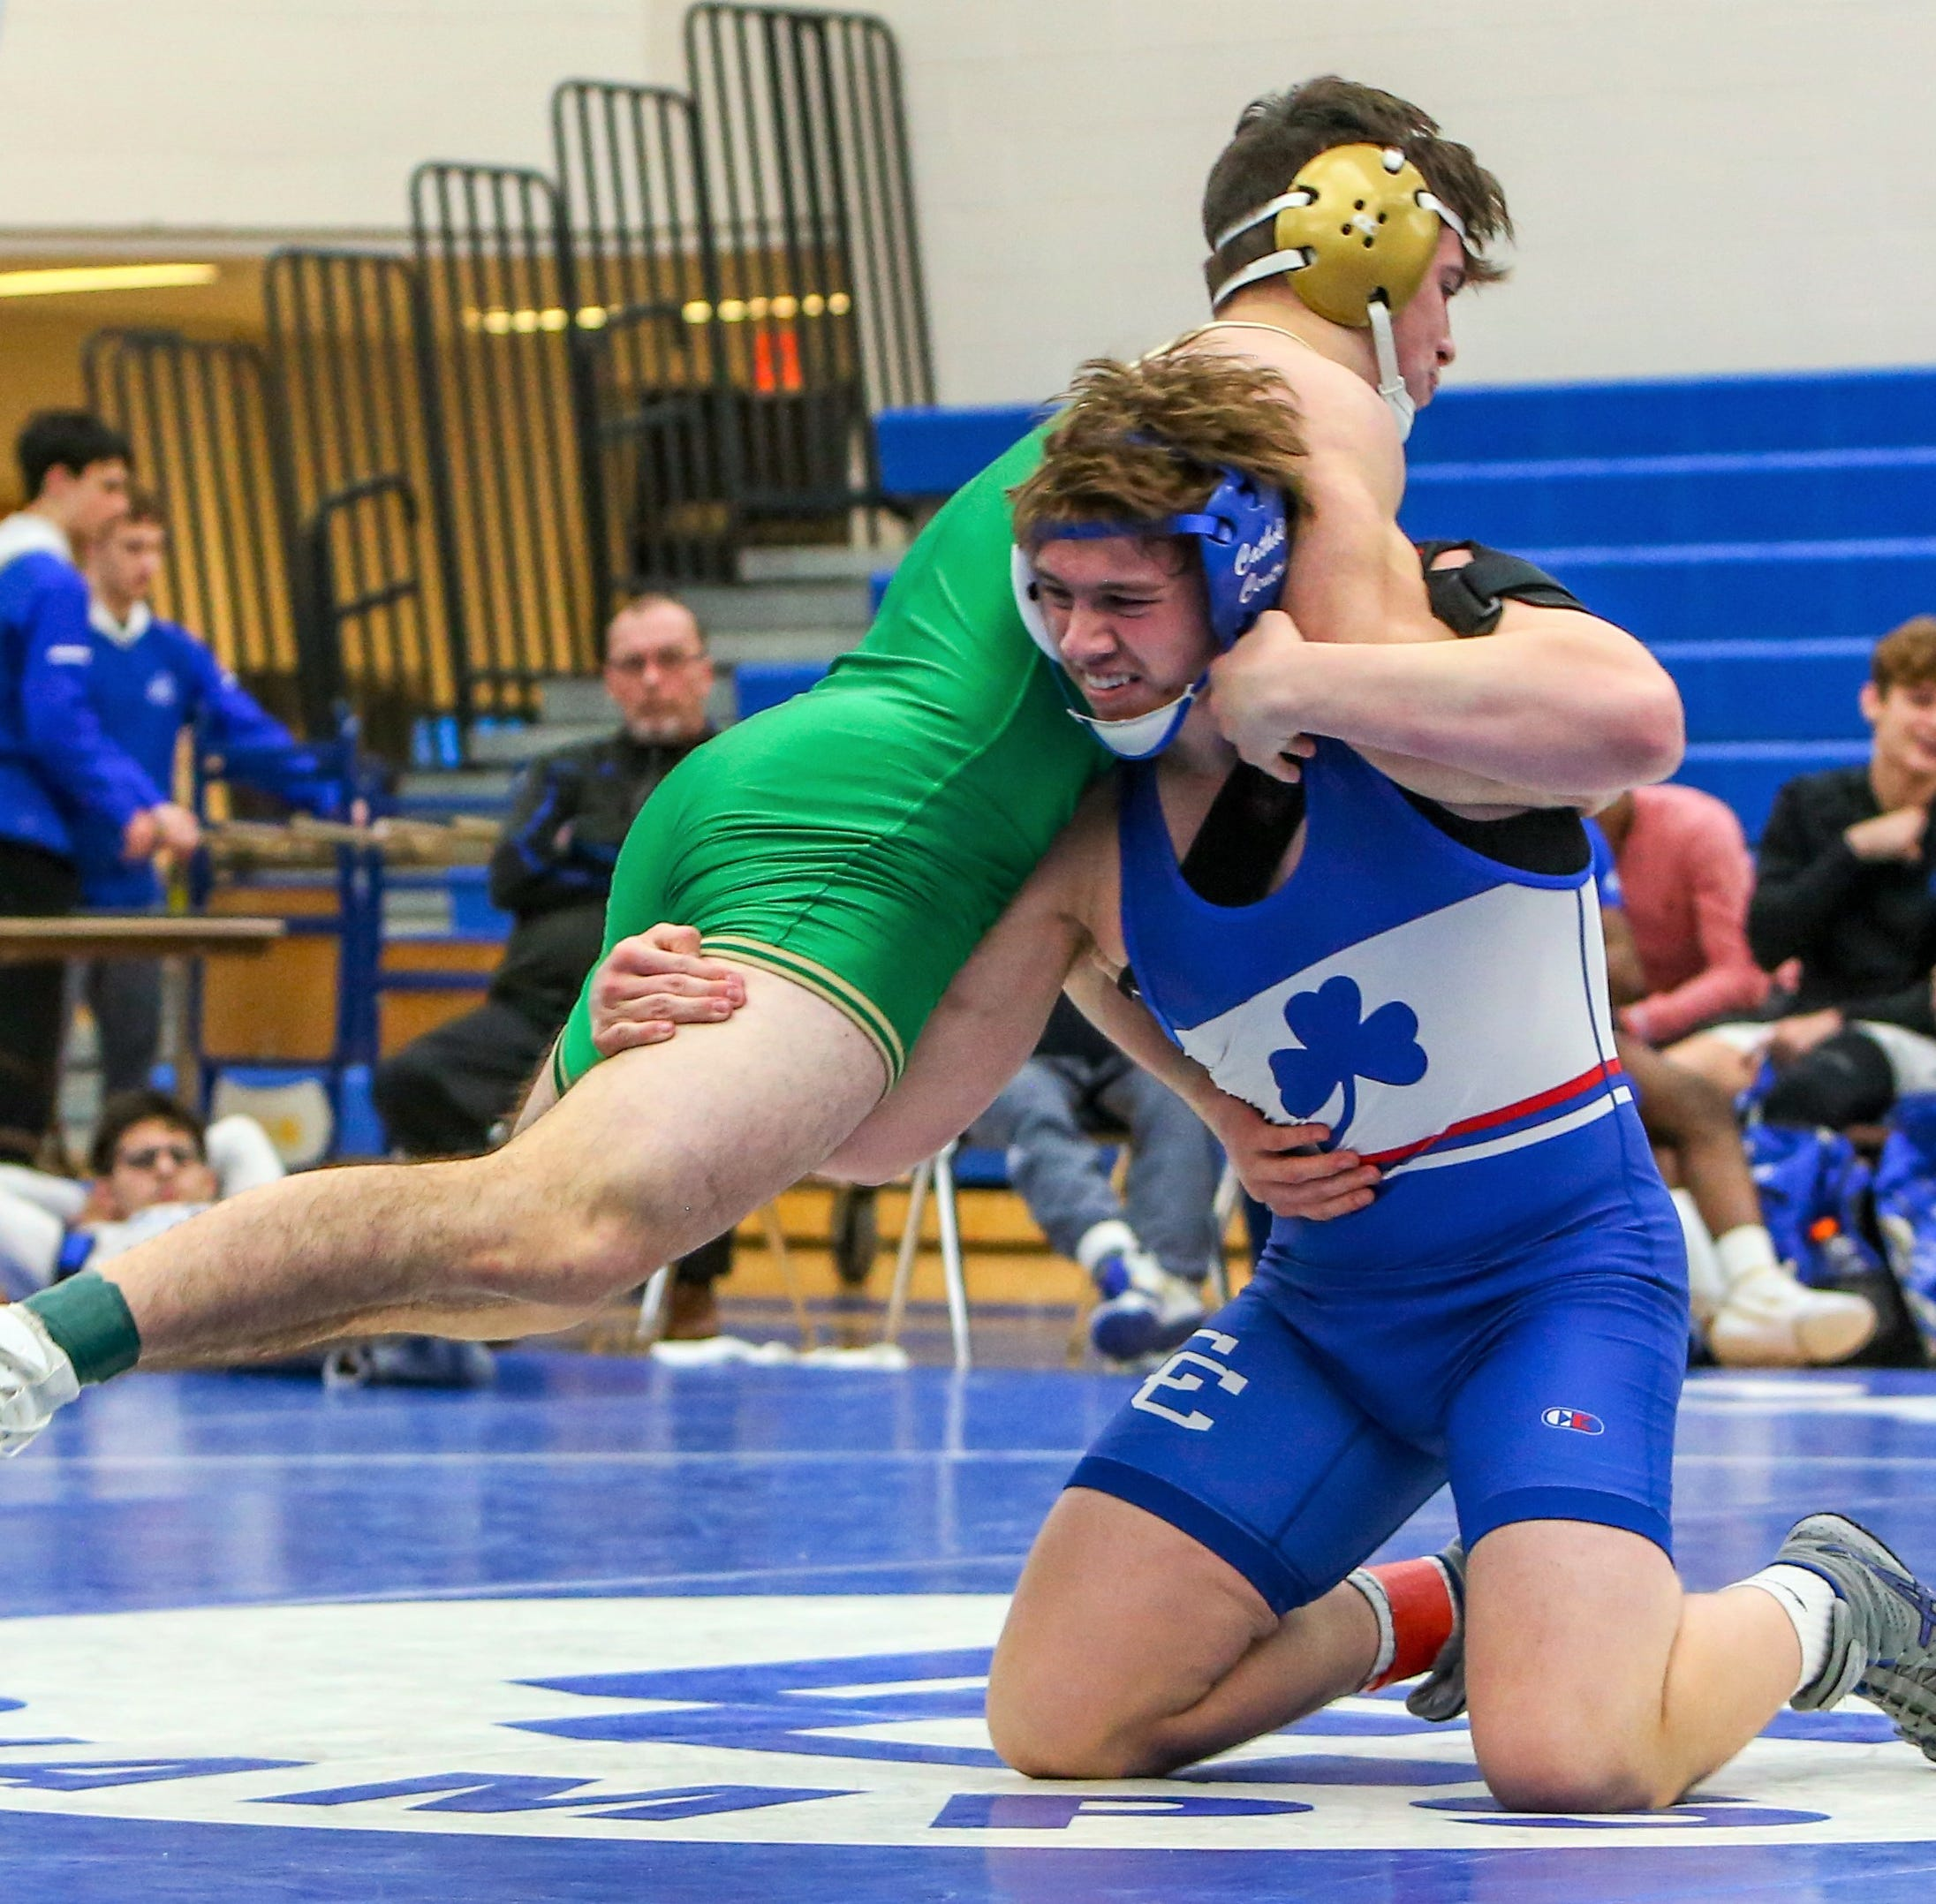 Unbeaten Detroit CC rules Super Duals after pinning Indiana's No. 1 Cathedral